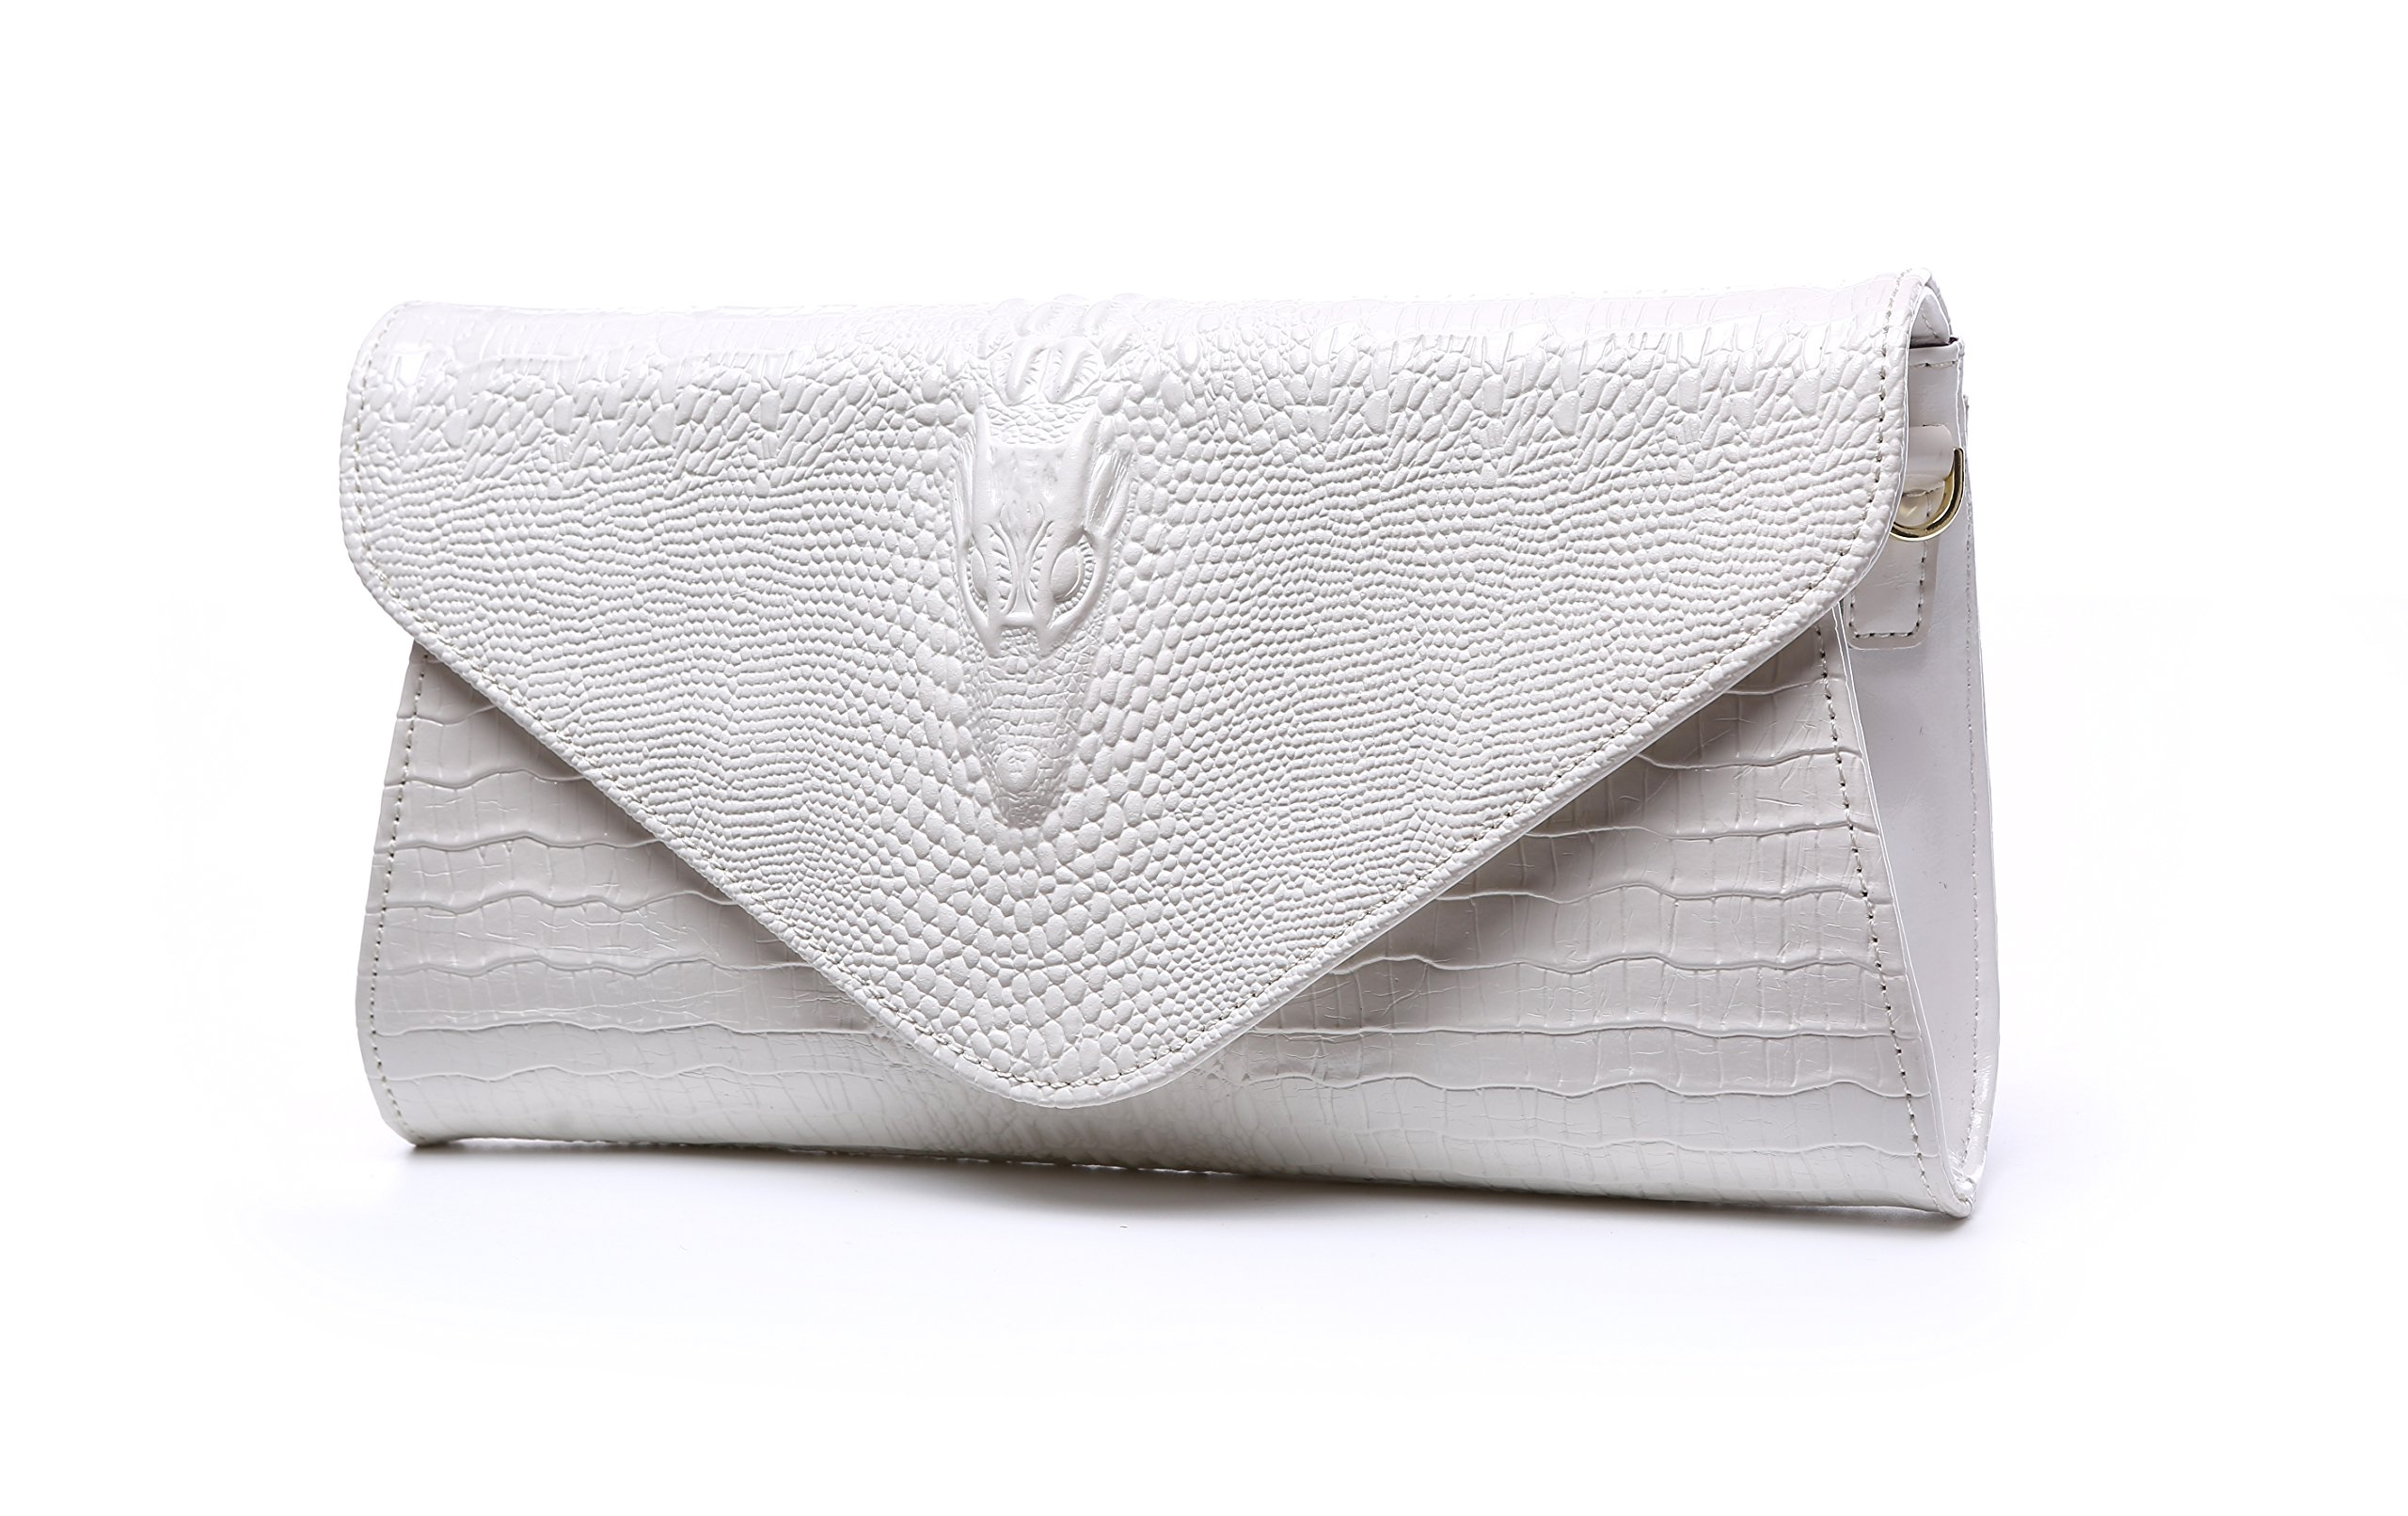 Bidear Envelope Clutch Purse Genuine Leather Party Handbag Evening Bags for Women (Leather-White)